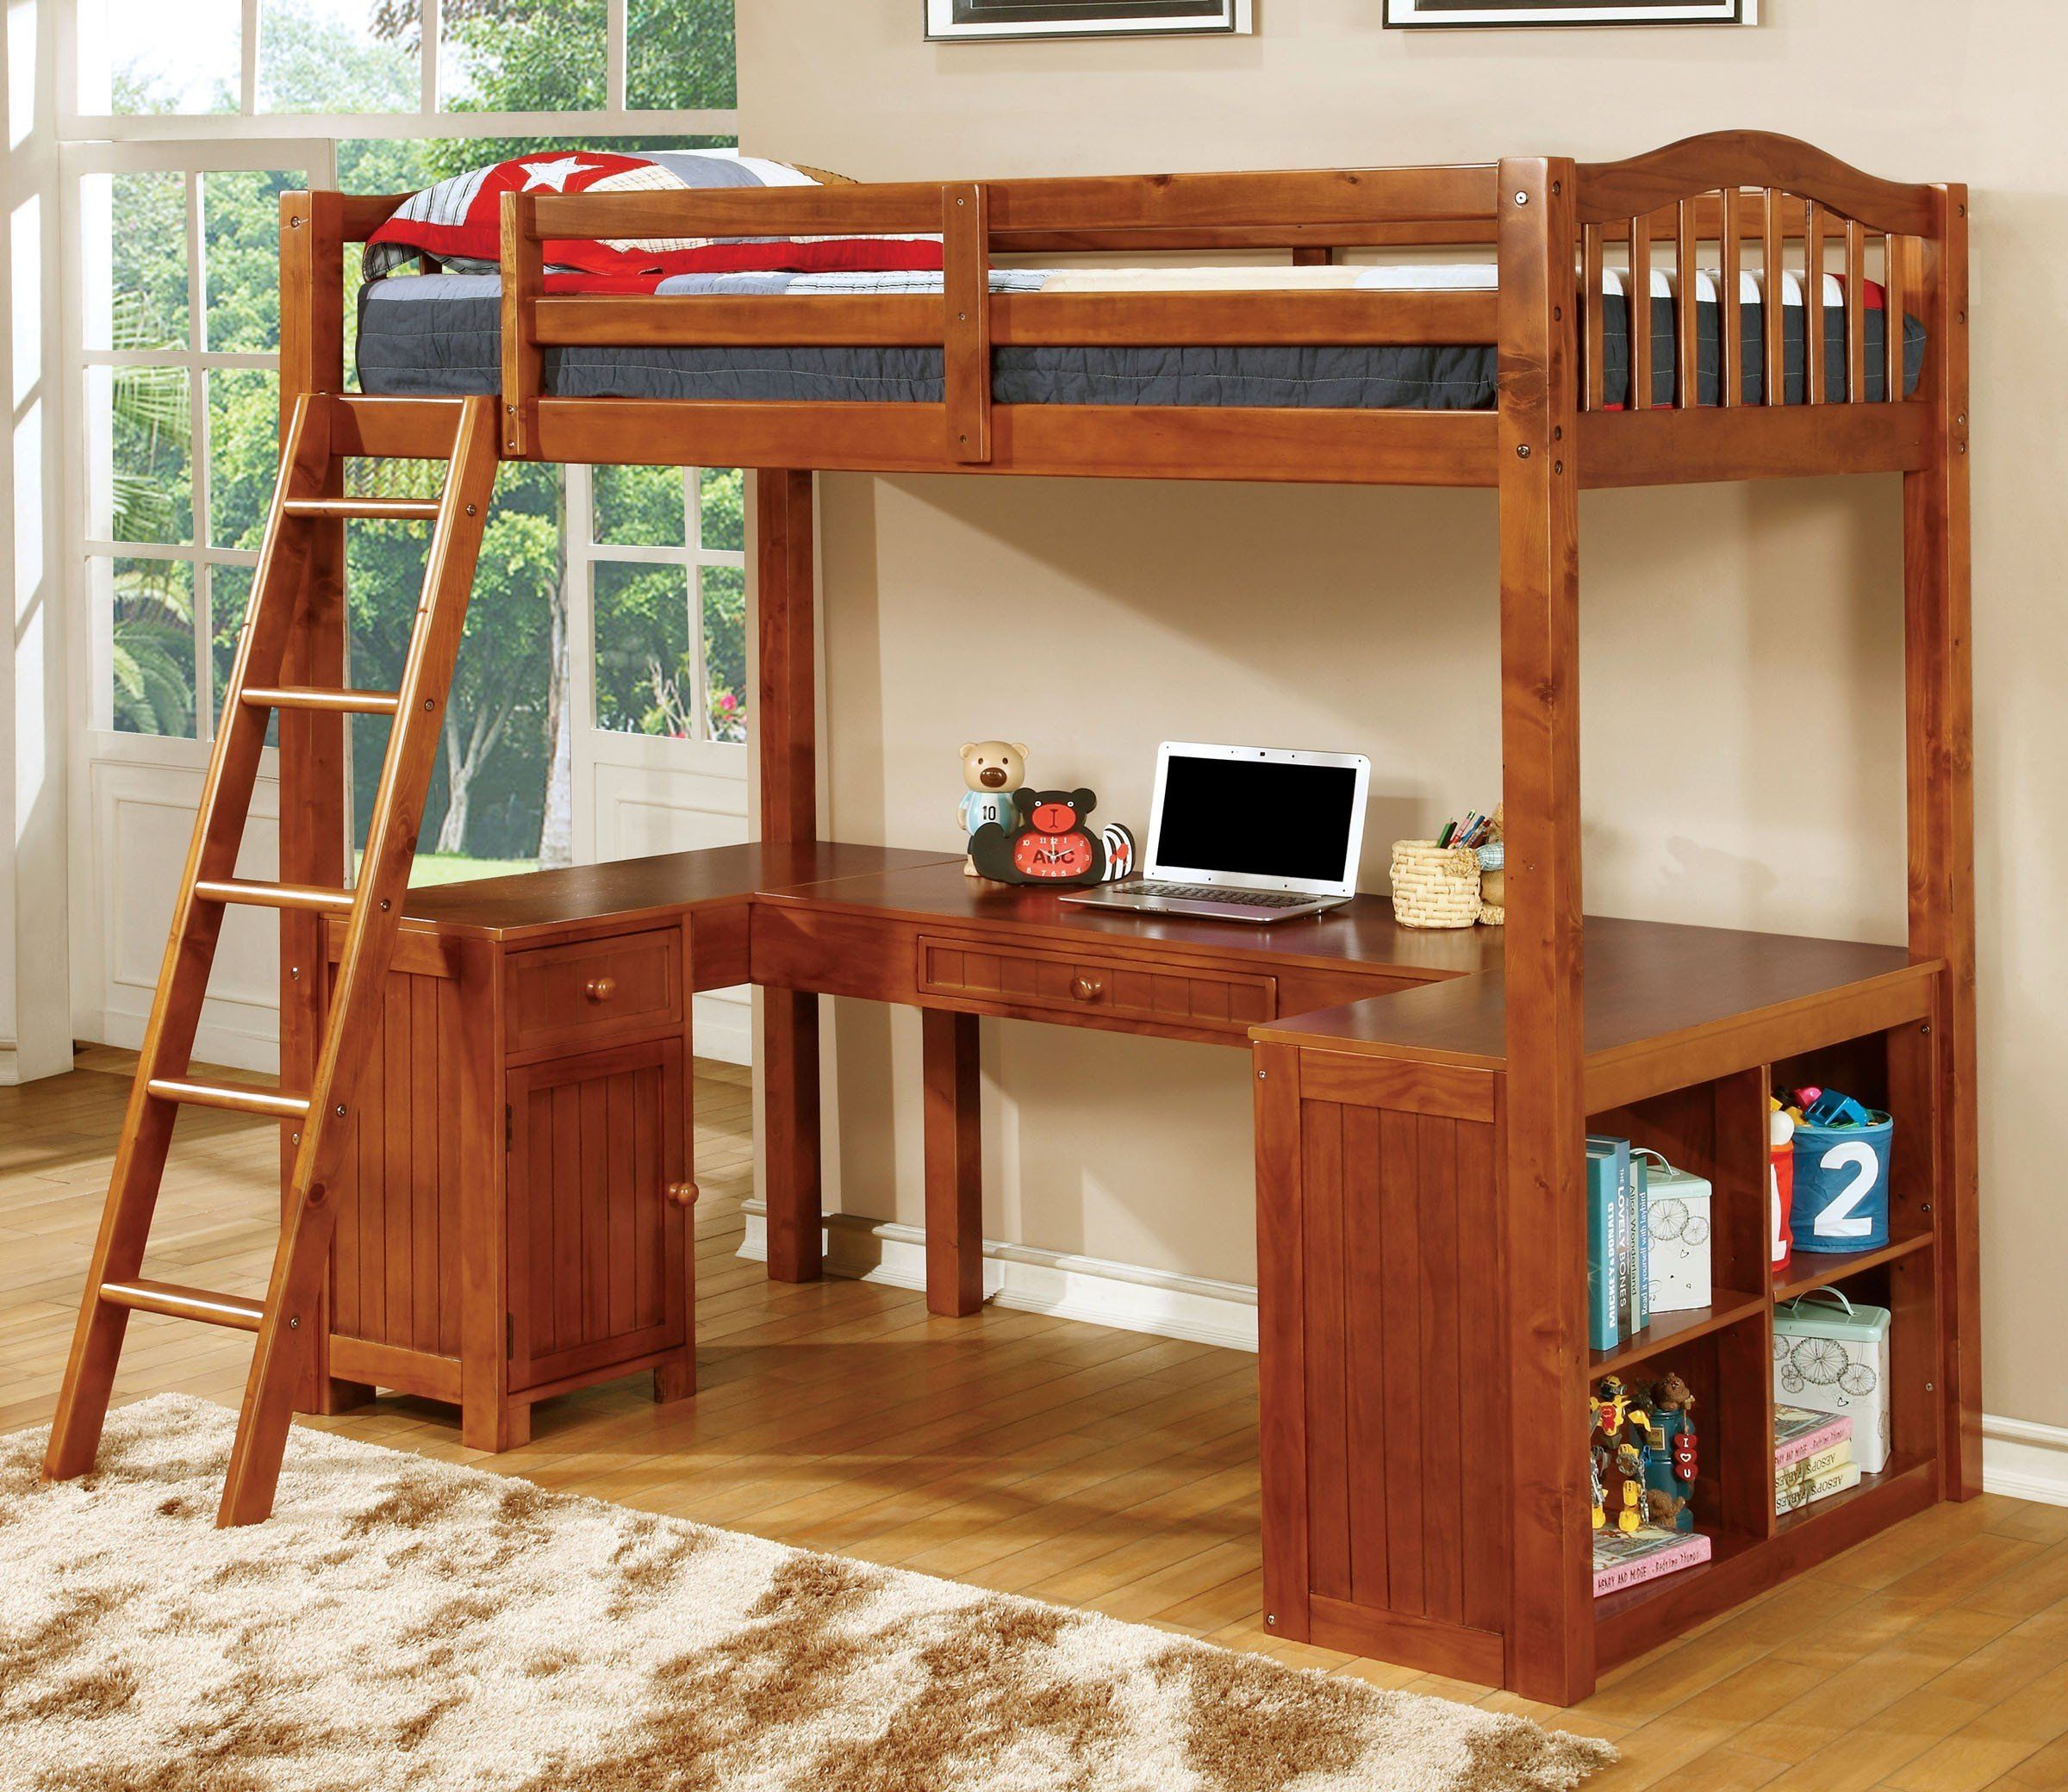 Oak loft bed with desk  Dutton CMBKA Oak Twin Workstation Loft Bed with BuiltIn Desk